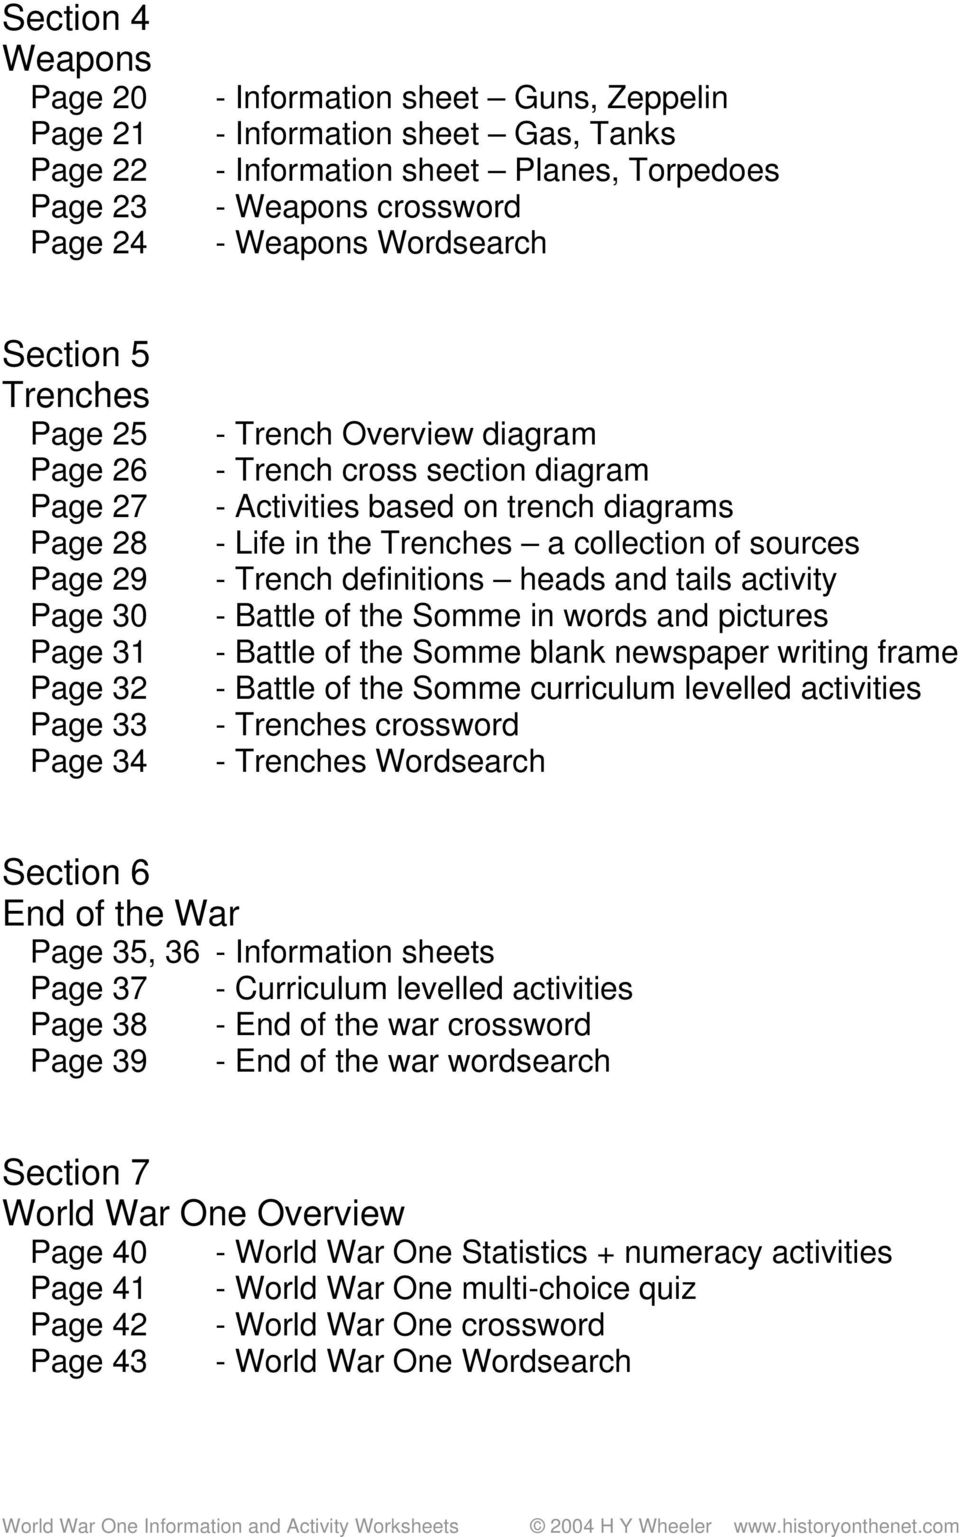 World War One Information And Activity Worksheets Pdf